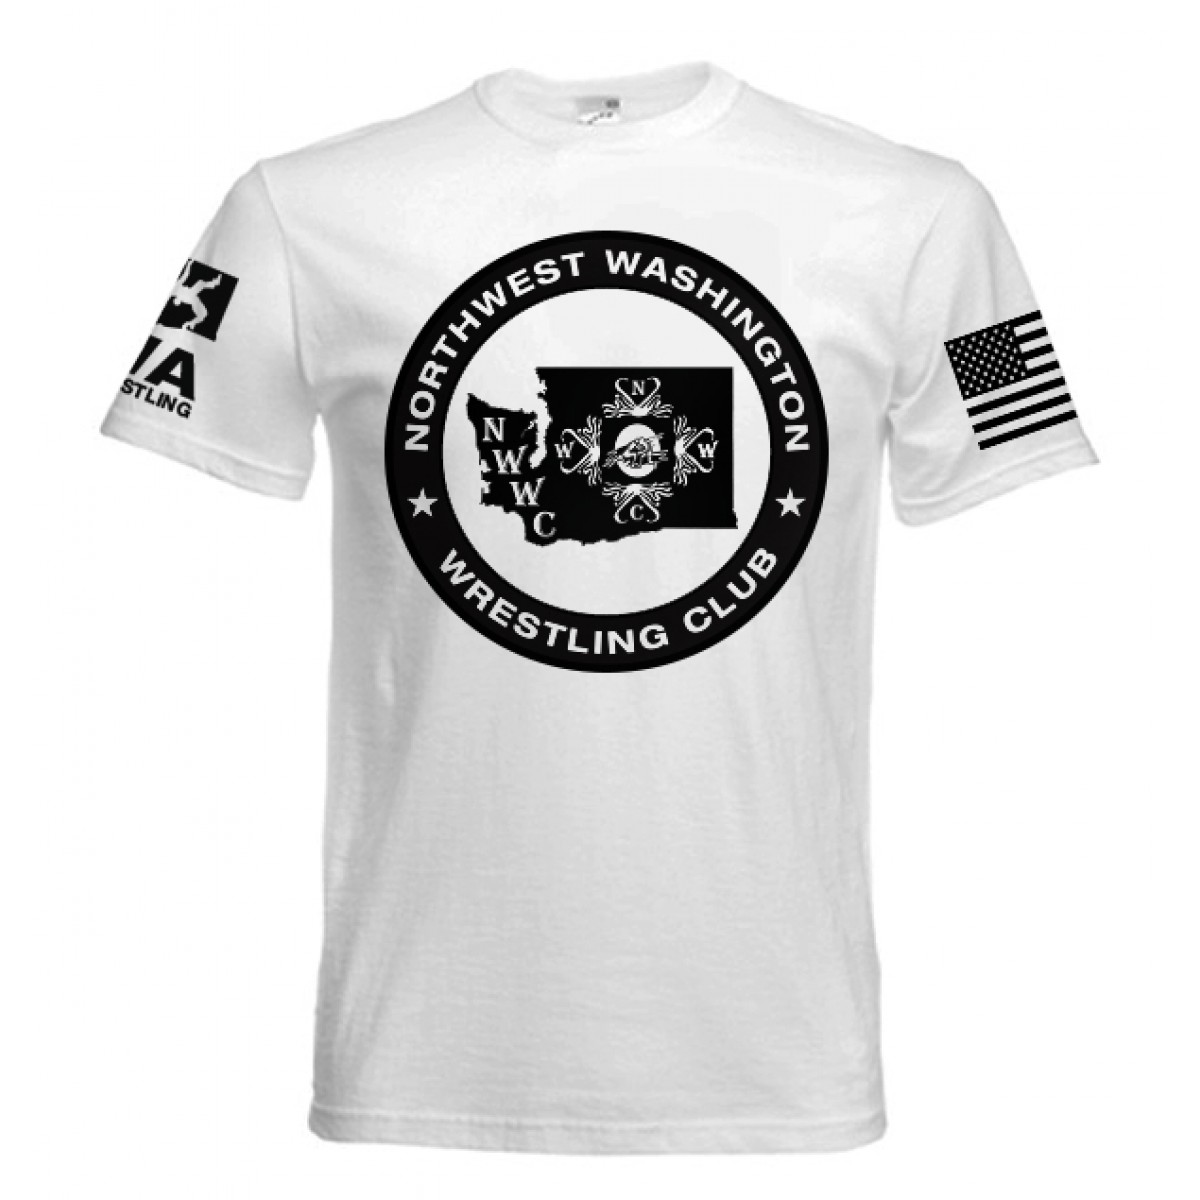 NWWC White T-shirt Black Logo